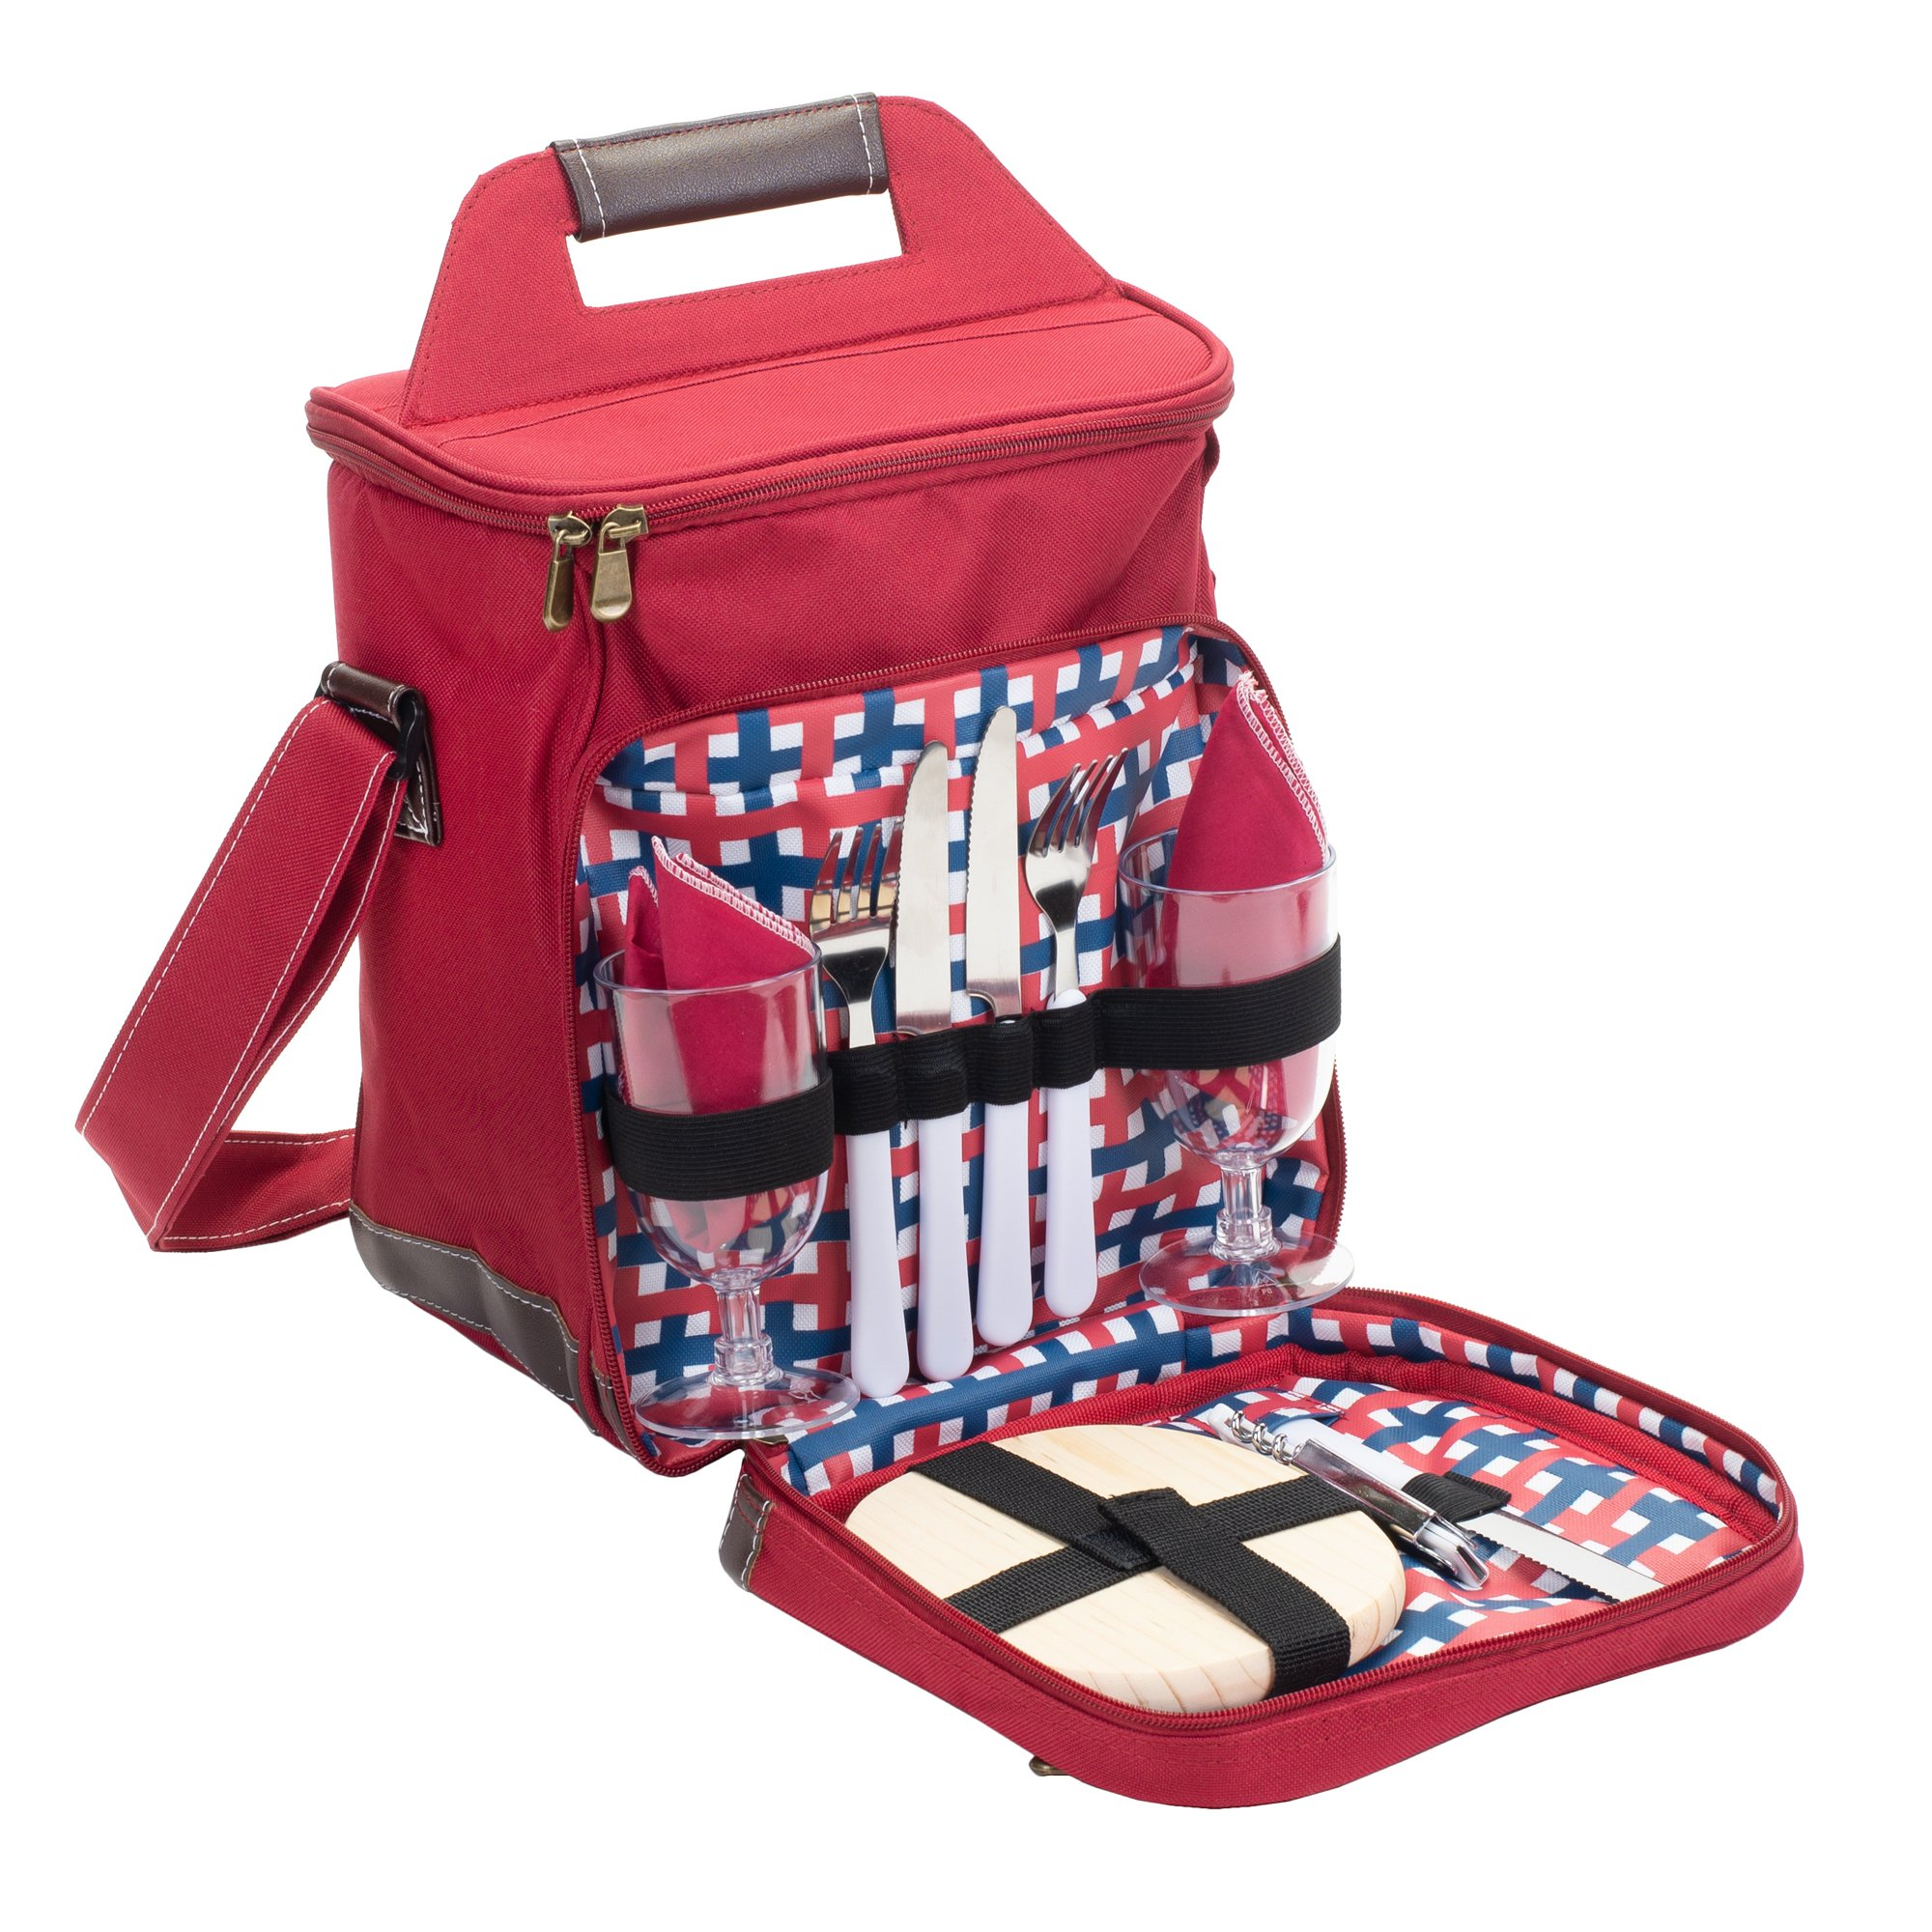 Class Collections 11 Piece Two Person Wine and Cheese Insulated Picnic Cooler Bag Set, Red by Class Collections